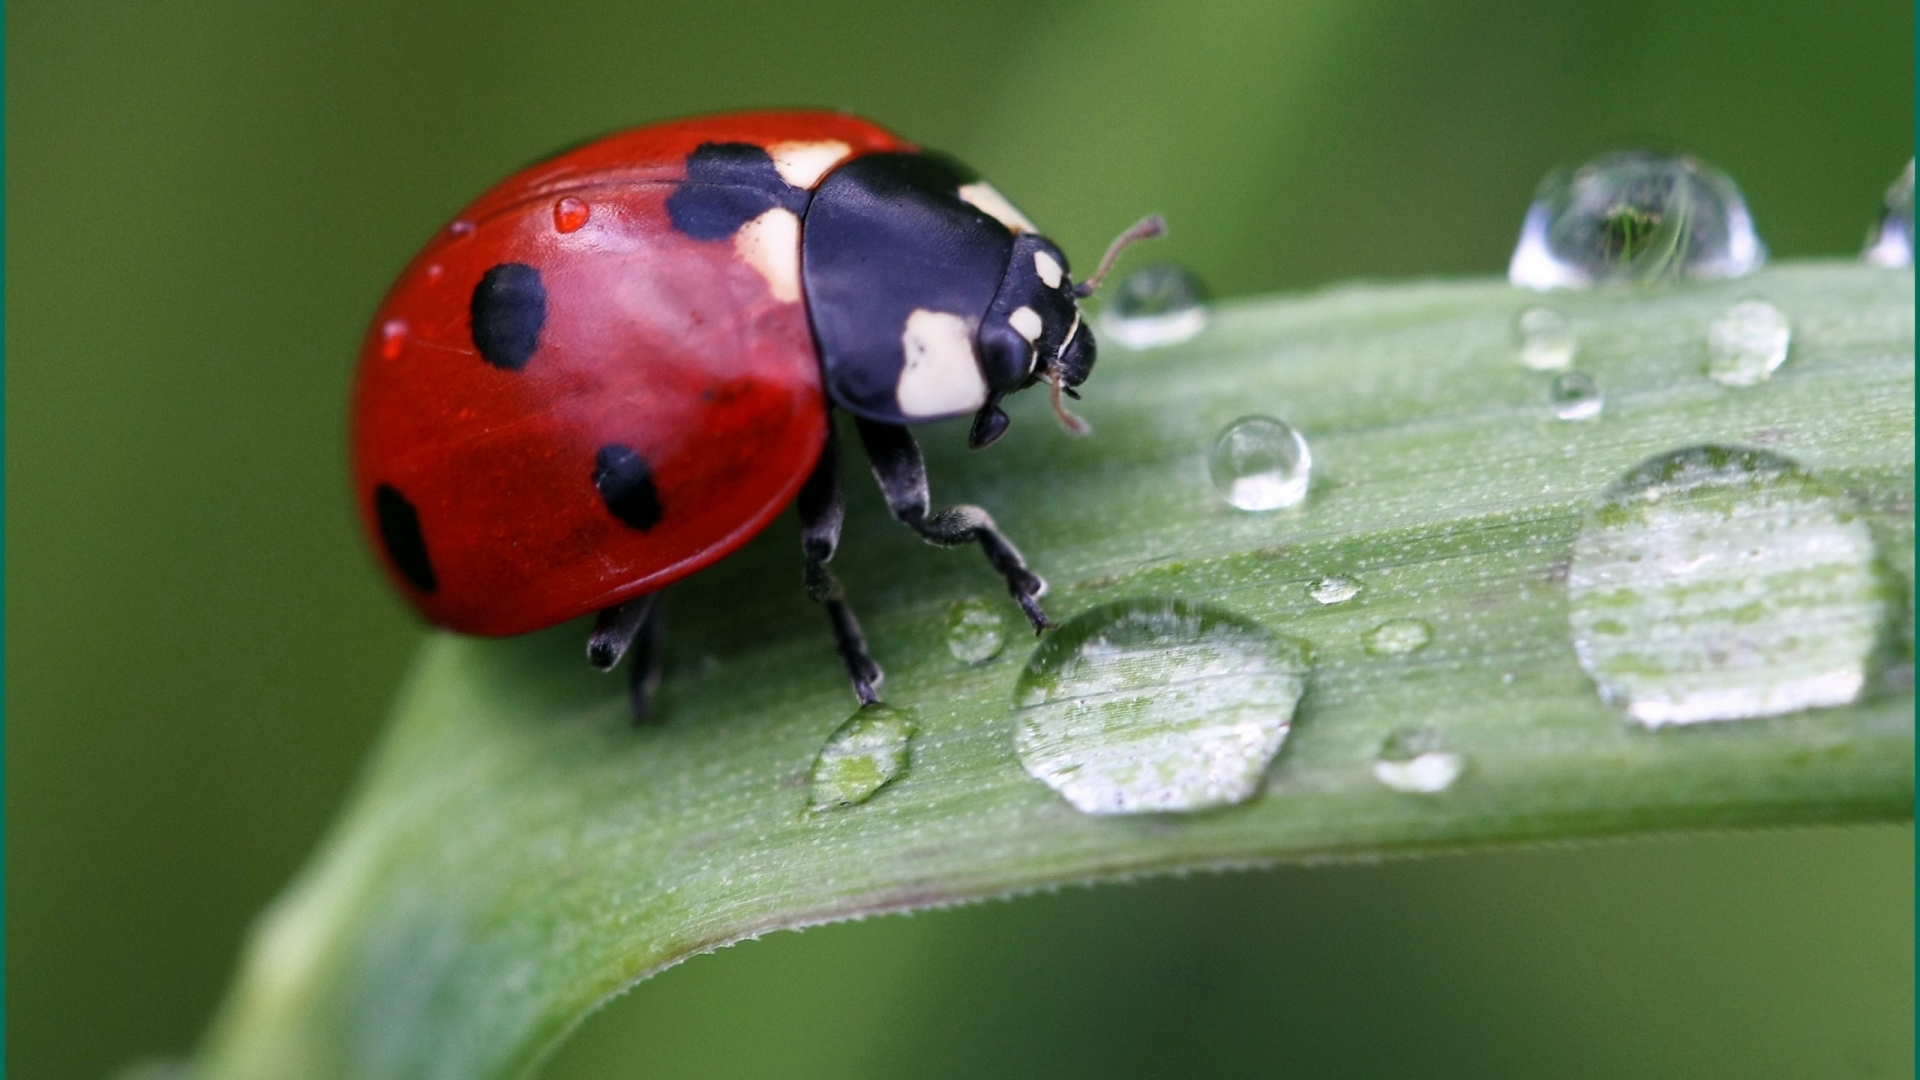 Cute Ladybird for 1920 x 1080 HDTV 1080p resolution